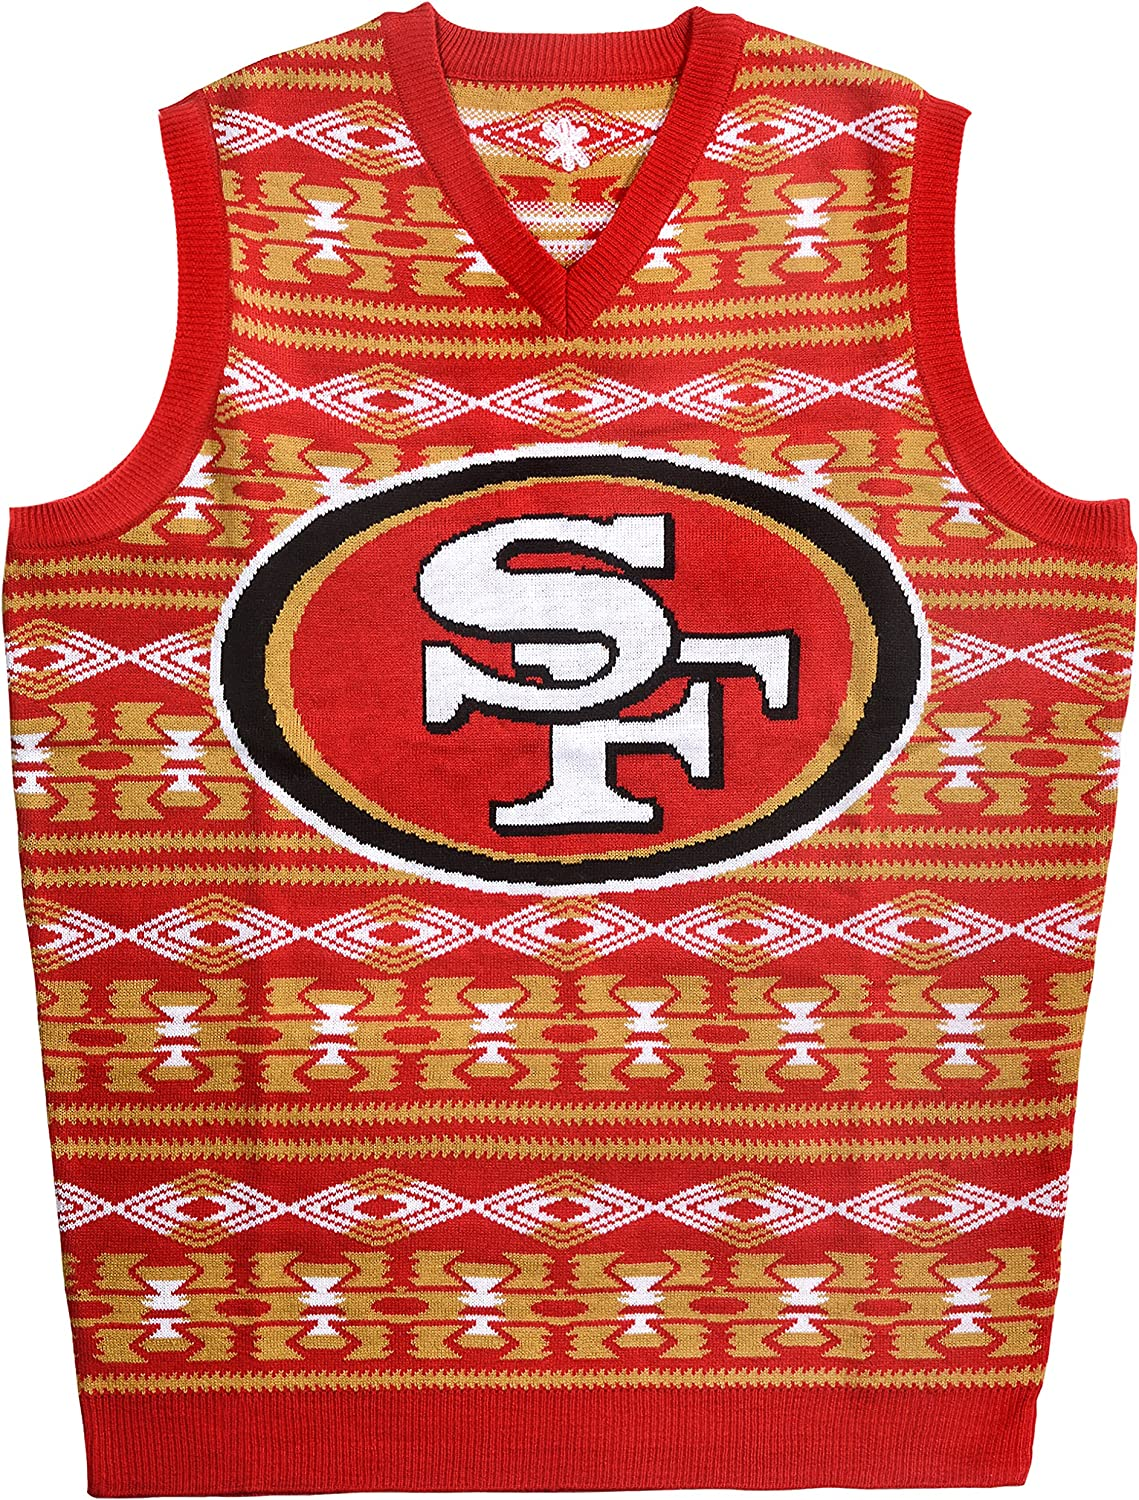 FOCO Super sale period limited New product NFL Aztec Vest Sweater Ugly